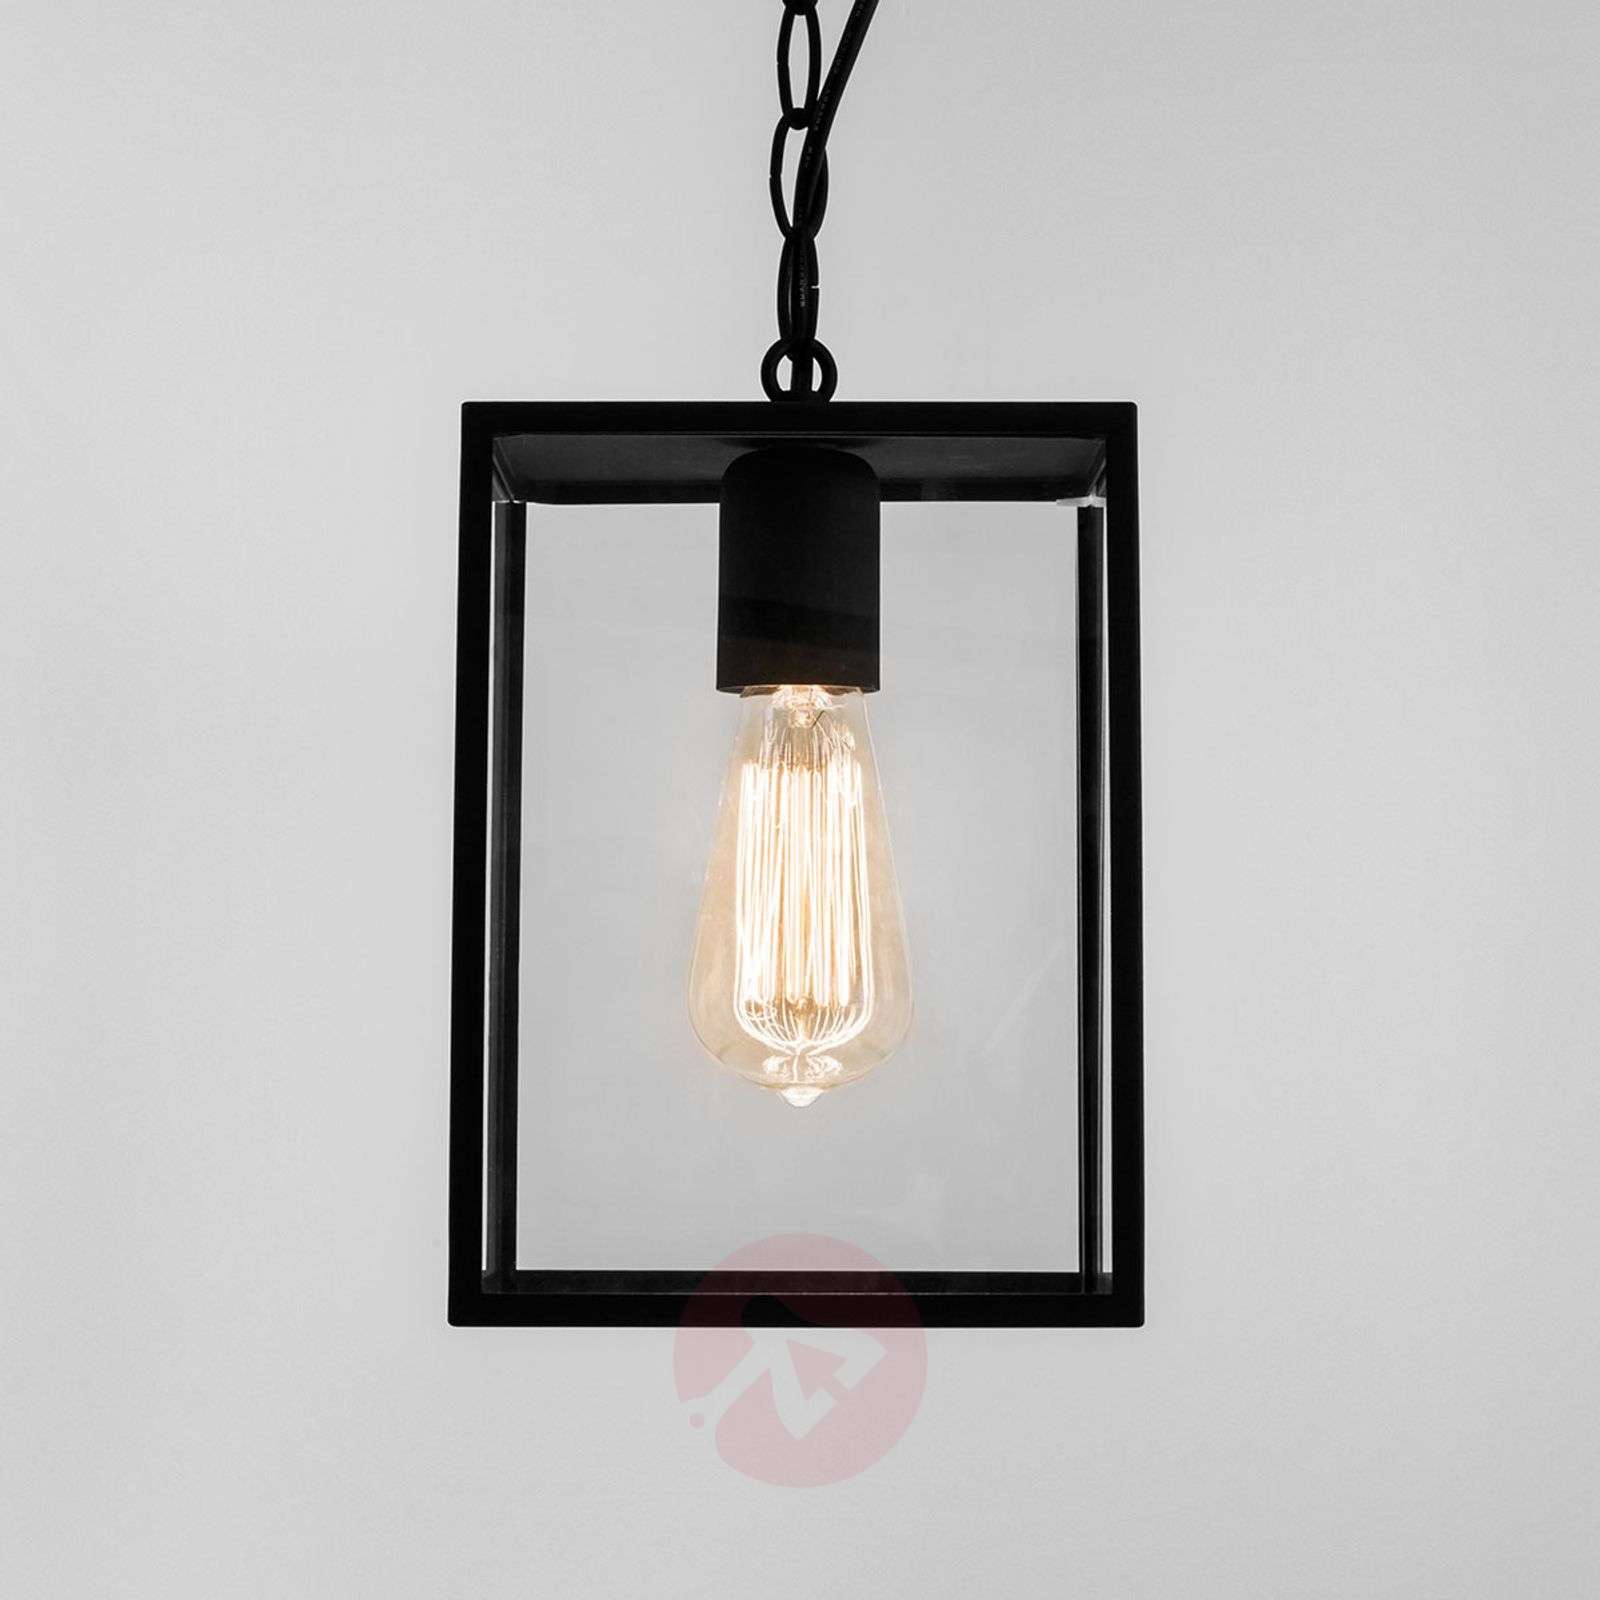 Homefield Pendant Outside Hanging Light-1020501-03